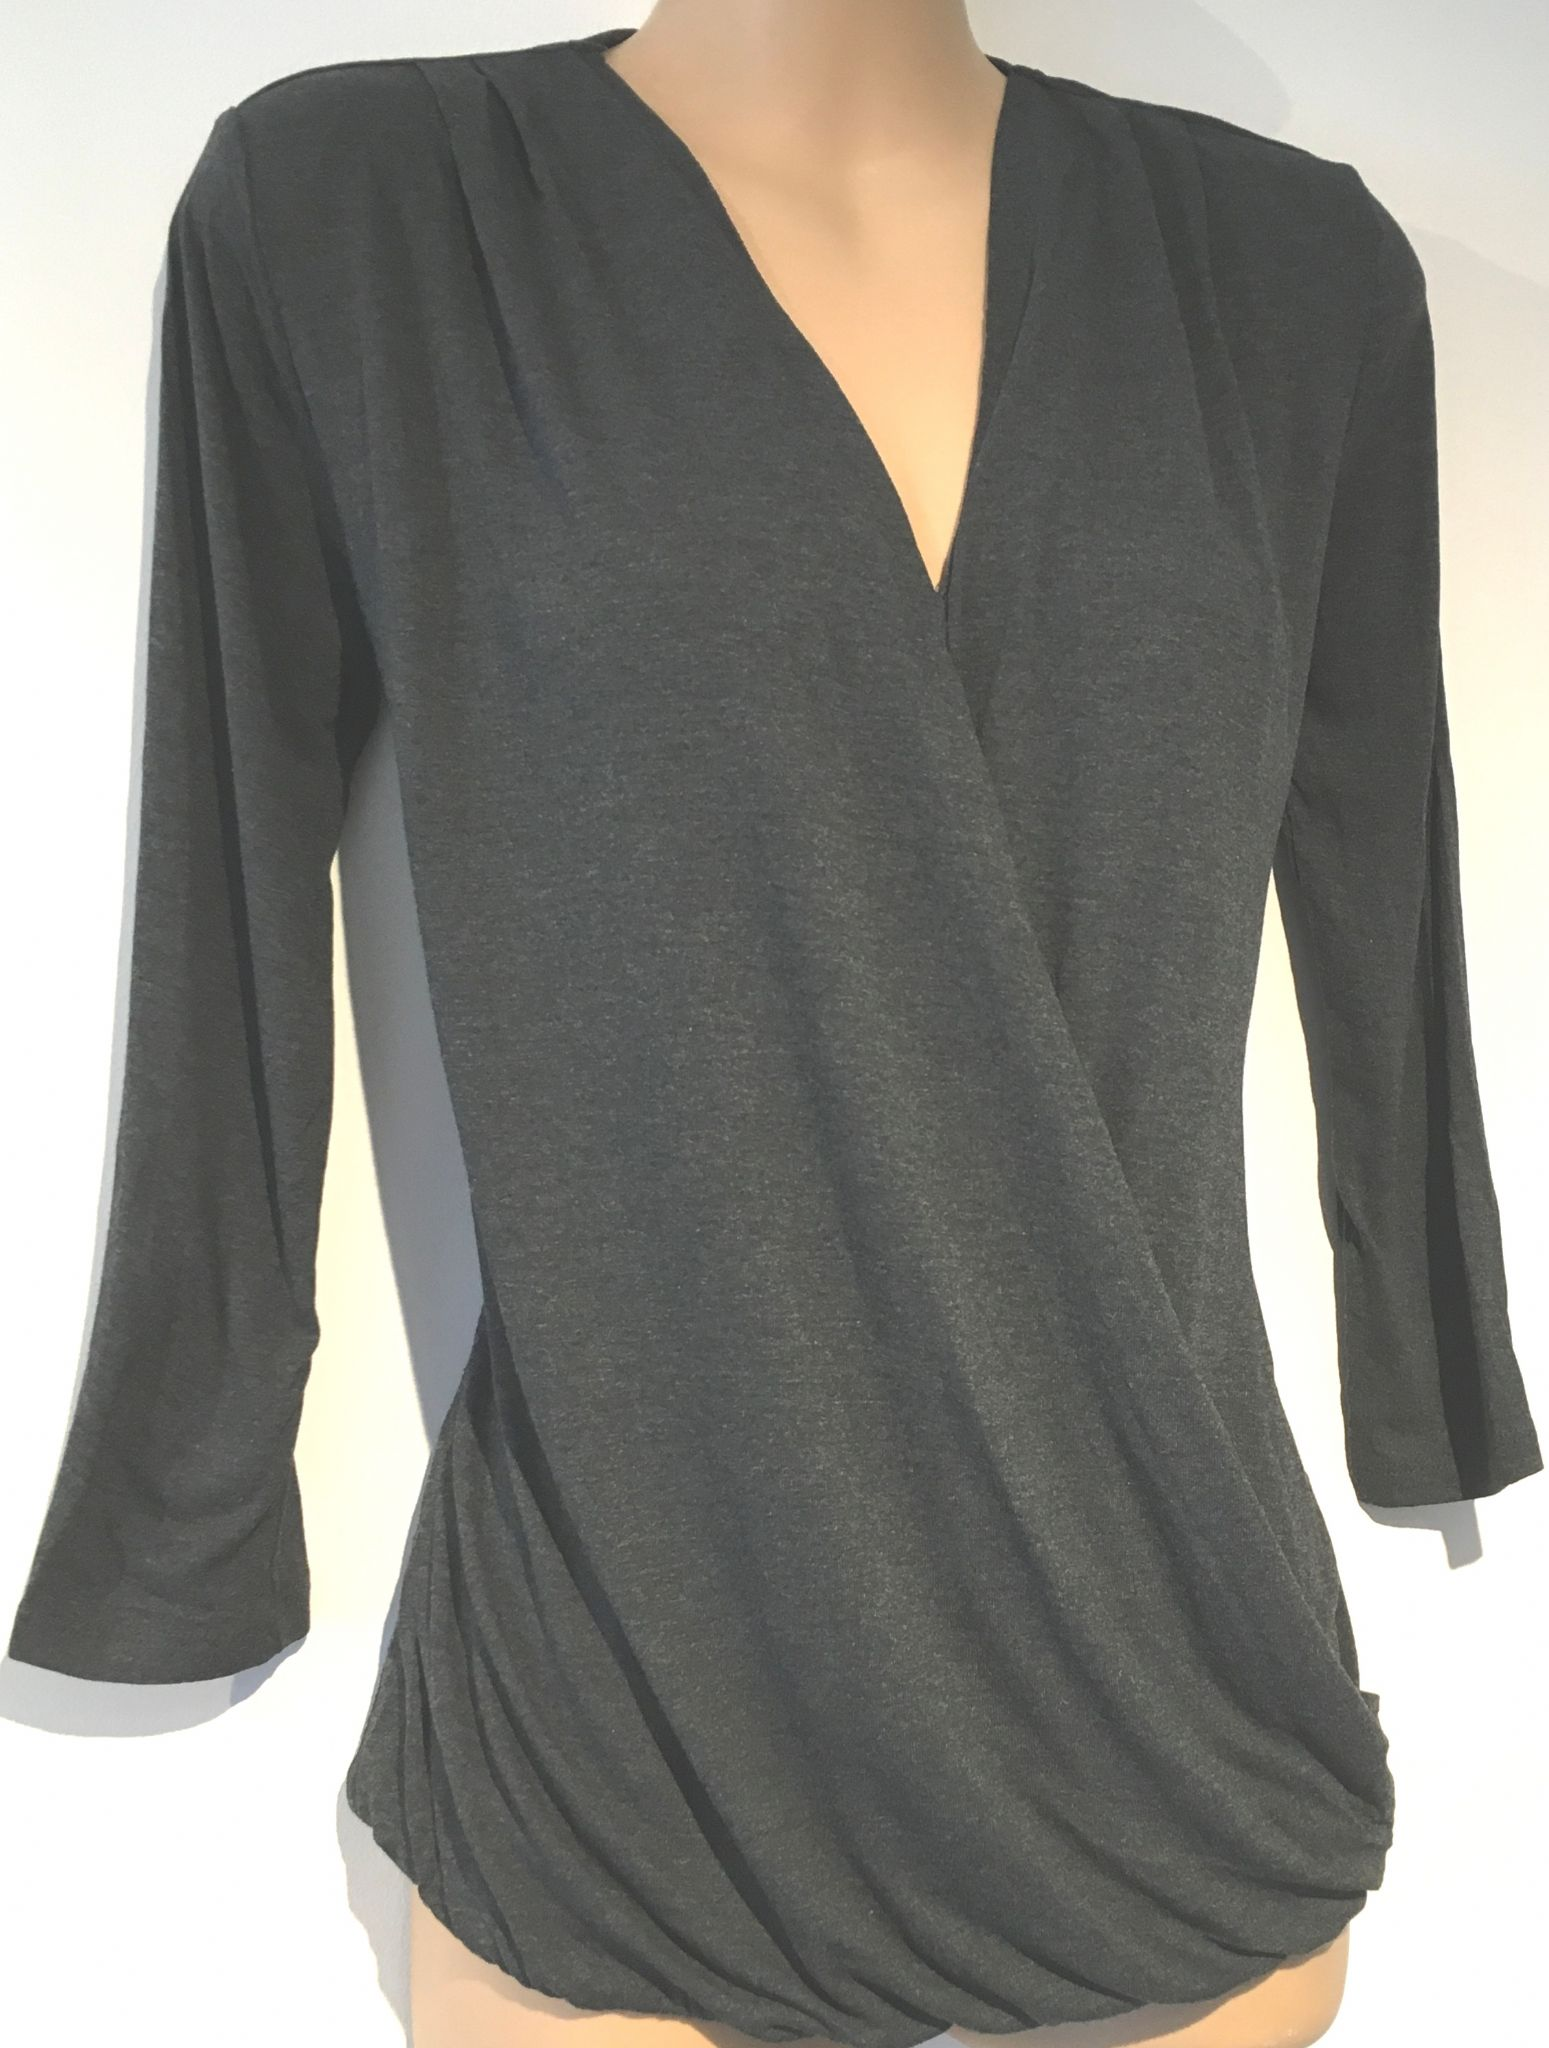 Plus Size Breastfeeding Shirts | Coolmine Community School